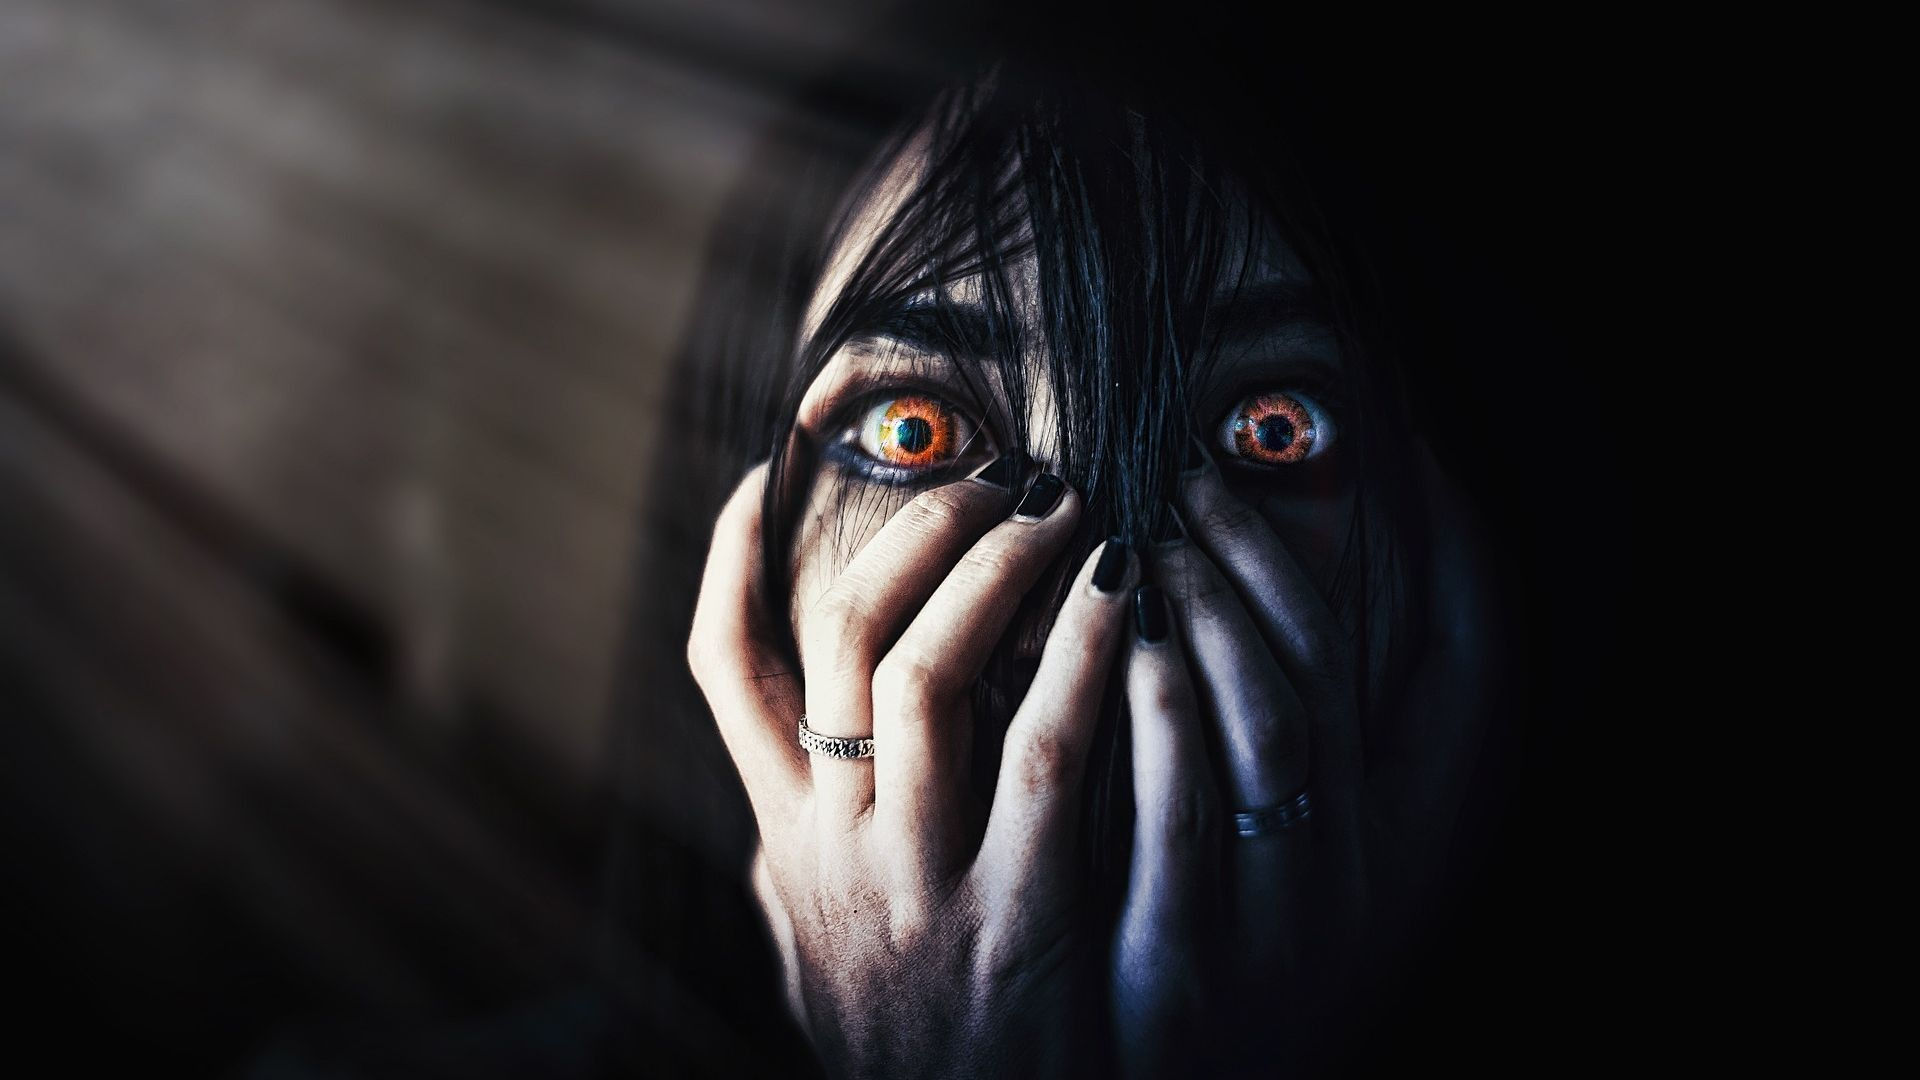 Pin By Zombee Ghoul On Creepy Cool Or Just Interesting With Images Scary Movies Scary Wallpaper Scary